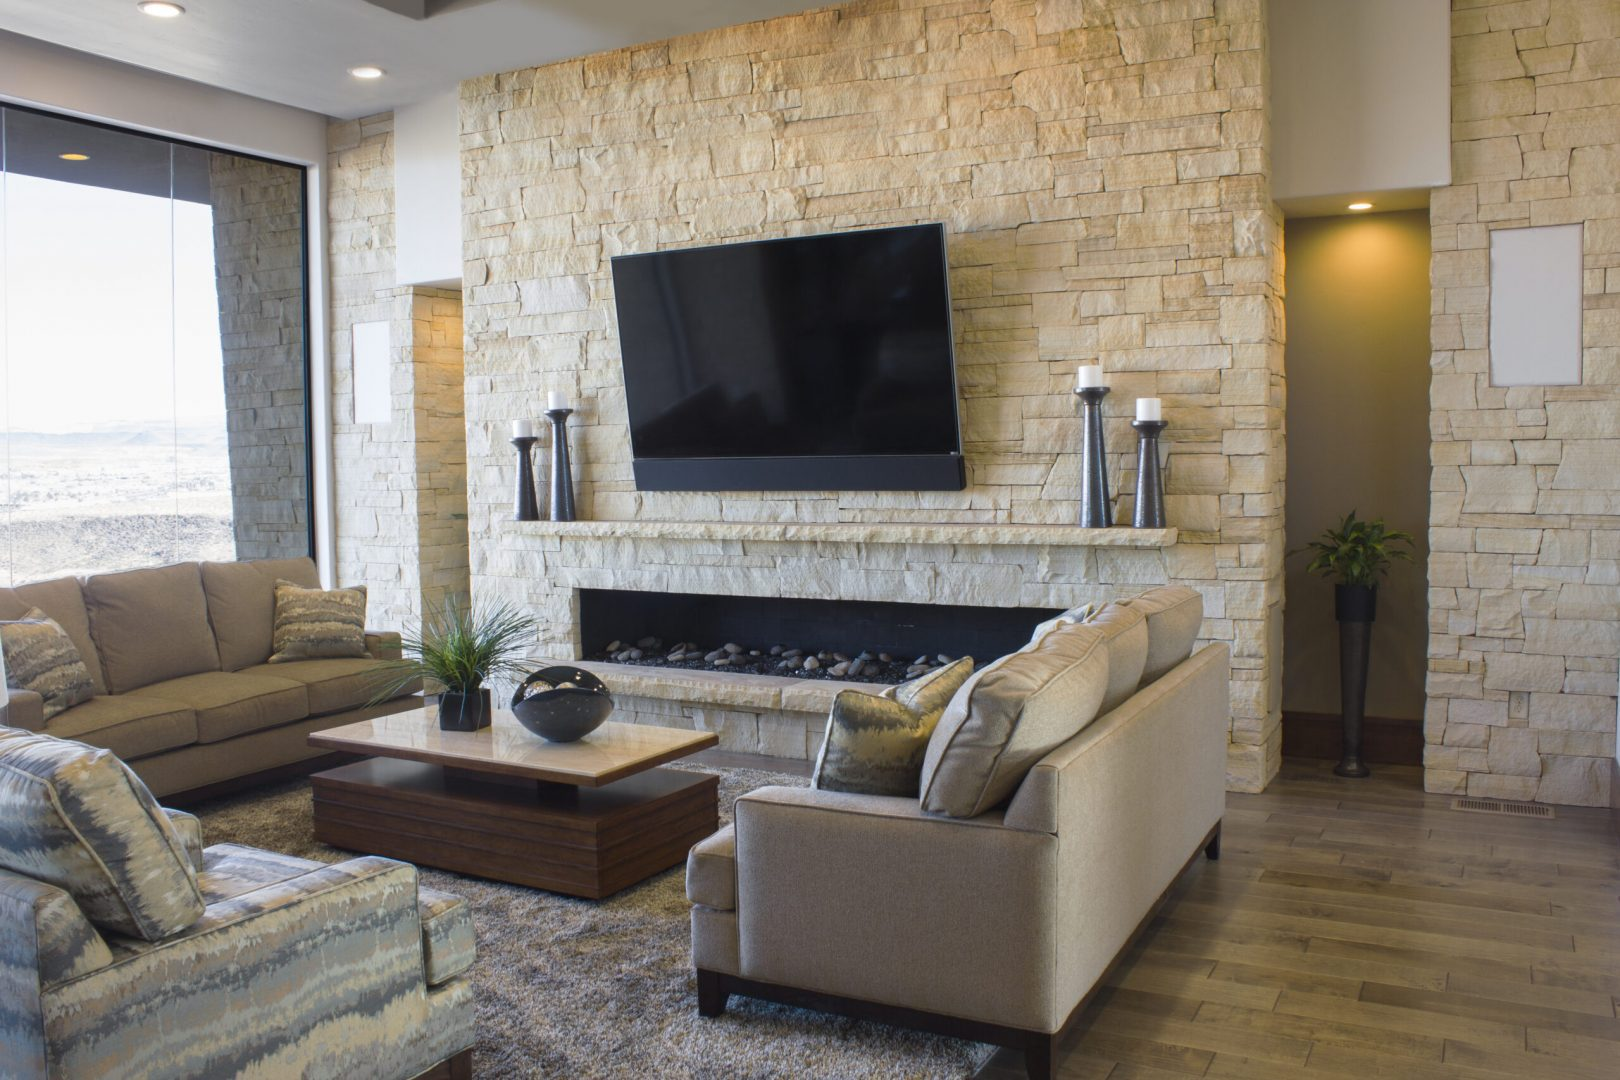 TV installation and surround sound system in luxury home